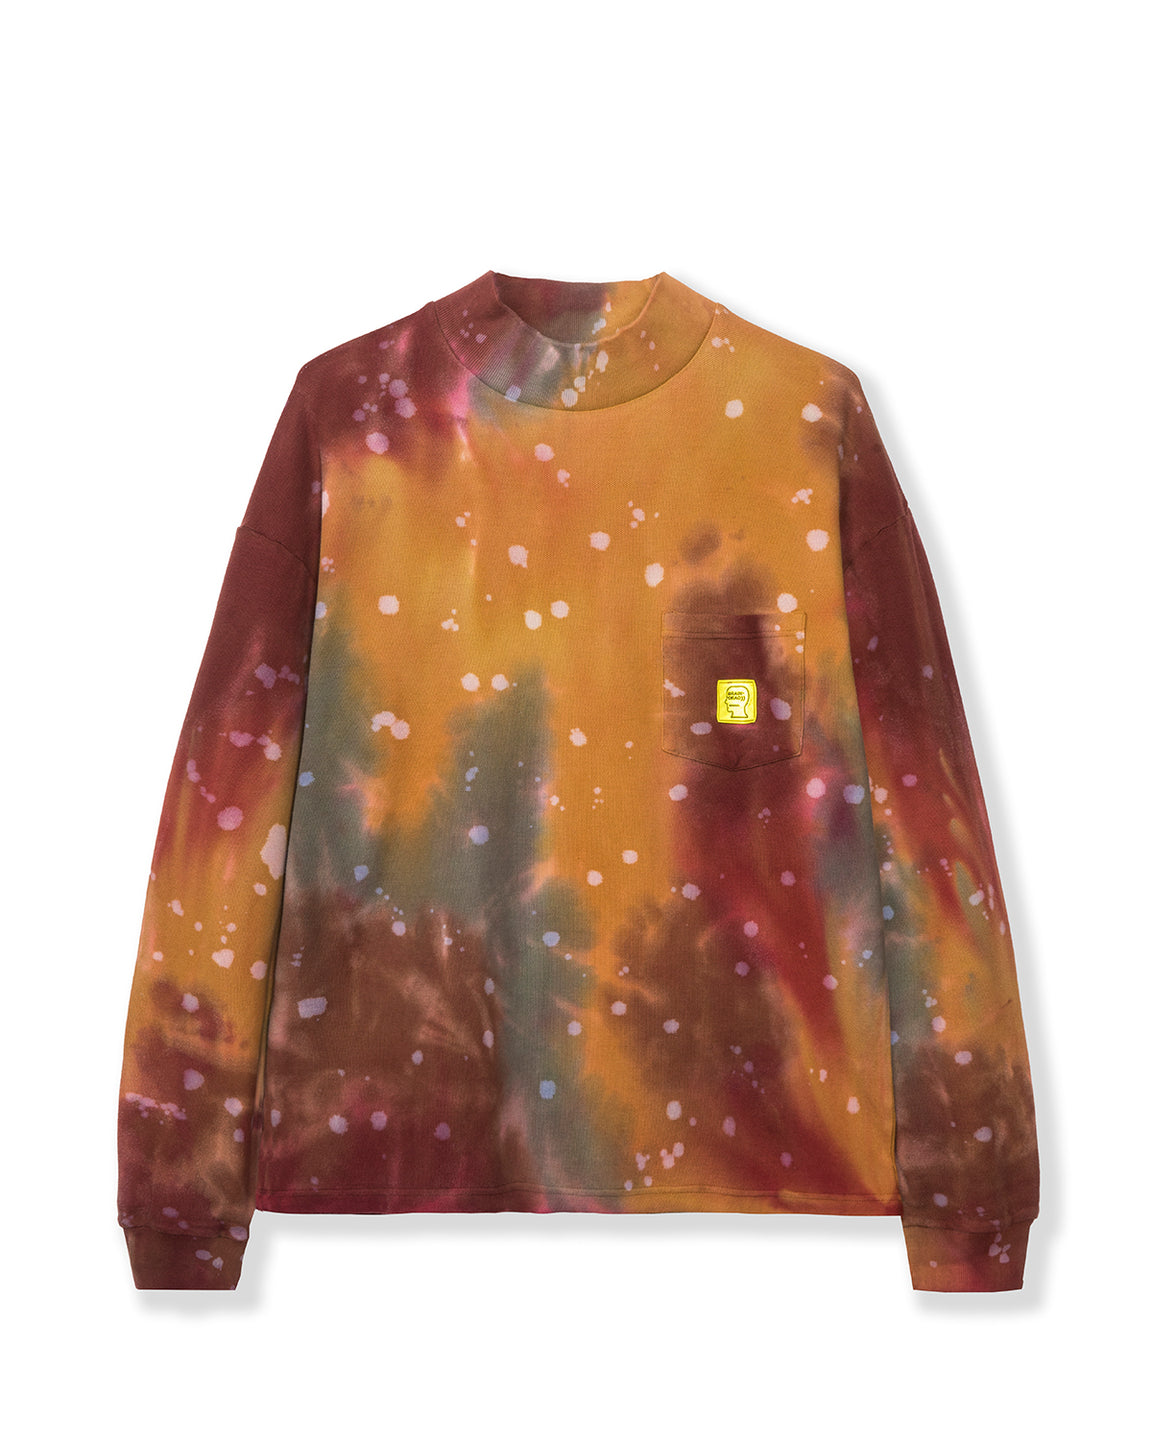 Dyed Pique Mock Neck Long Sleeve - Red/Multi